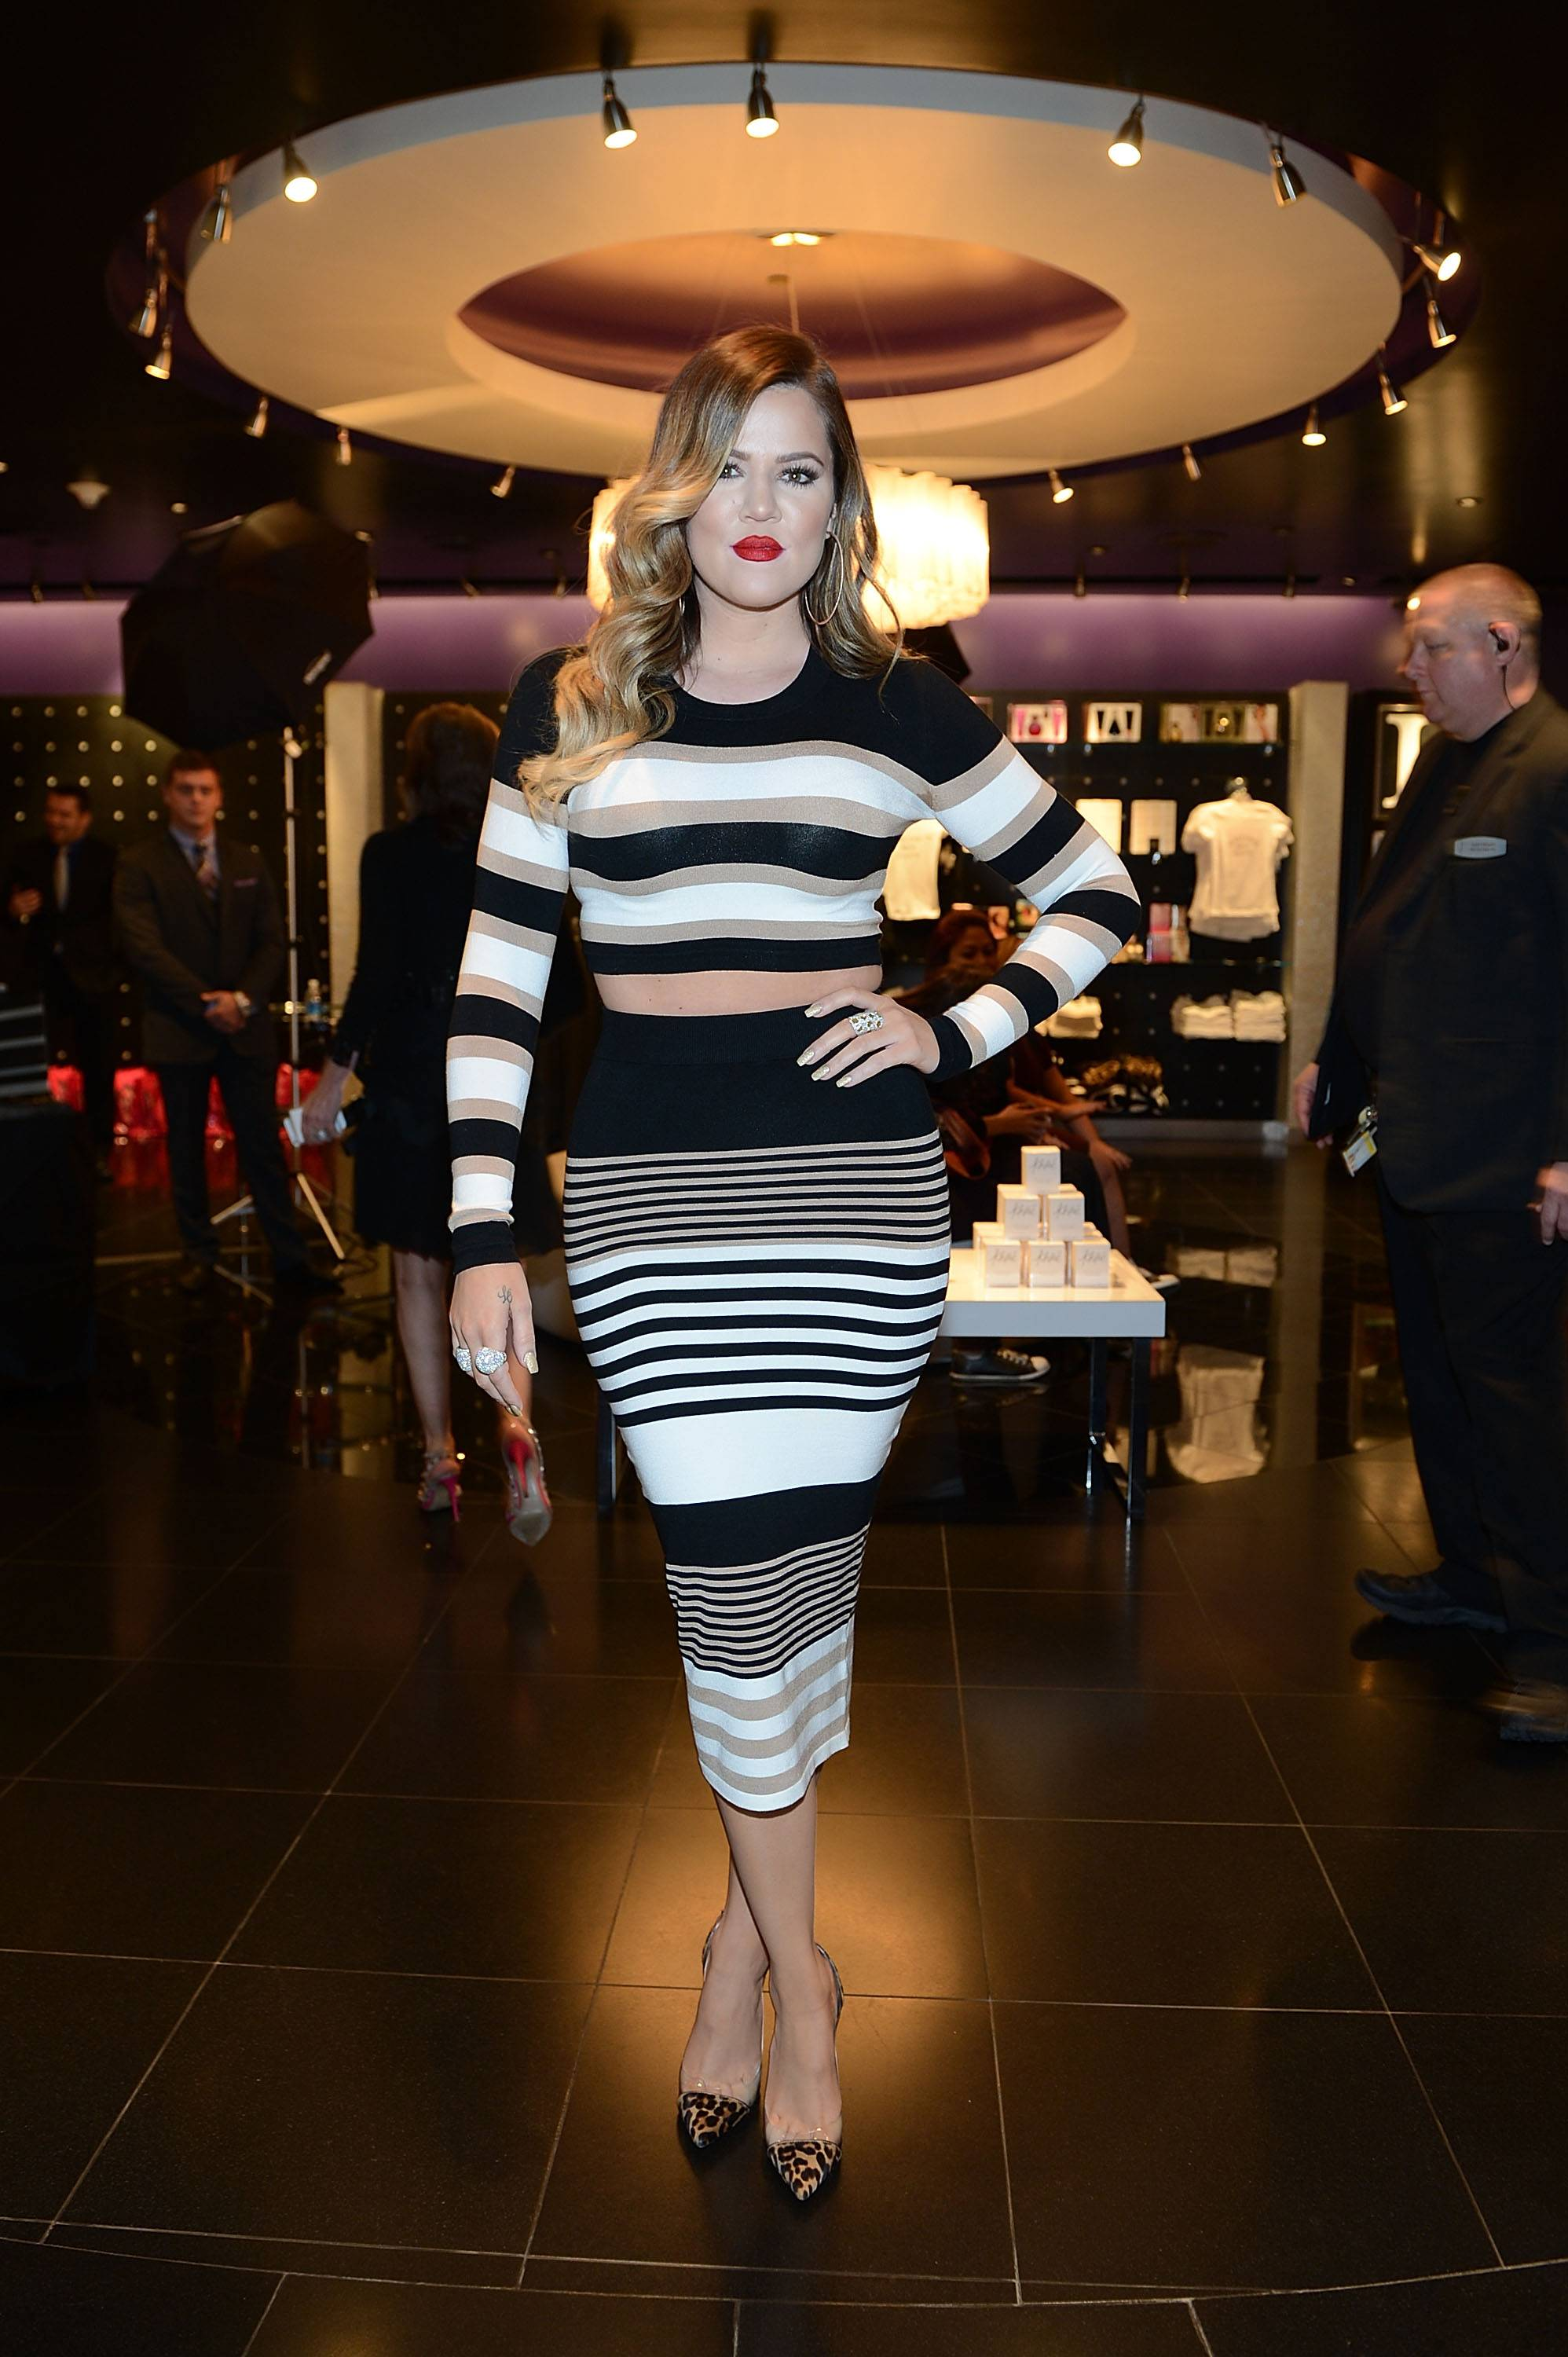 Khloe Kardashian Special Appearance At Kardashian Khaos In The Mirage Hotel And Casino